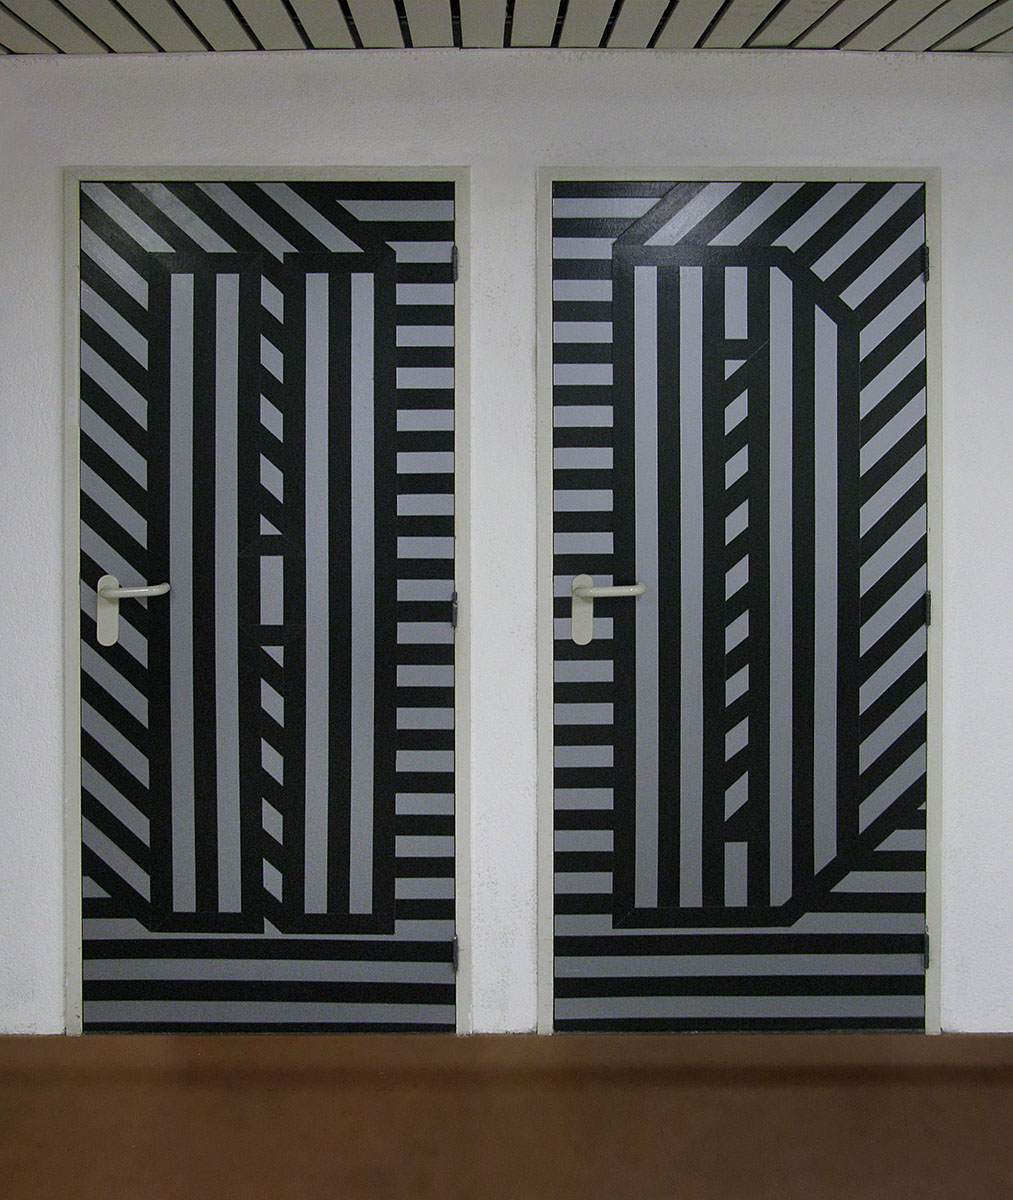 BAUT toilet doors 2012